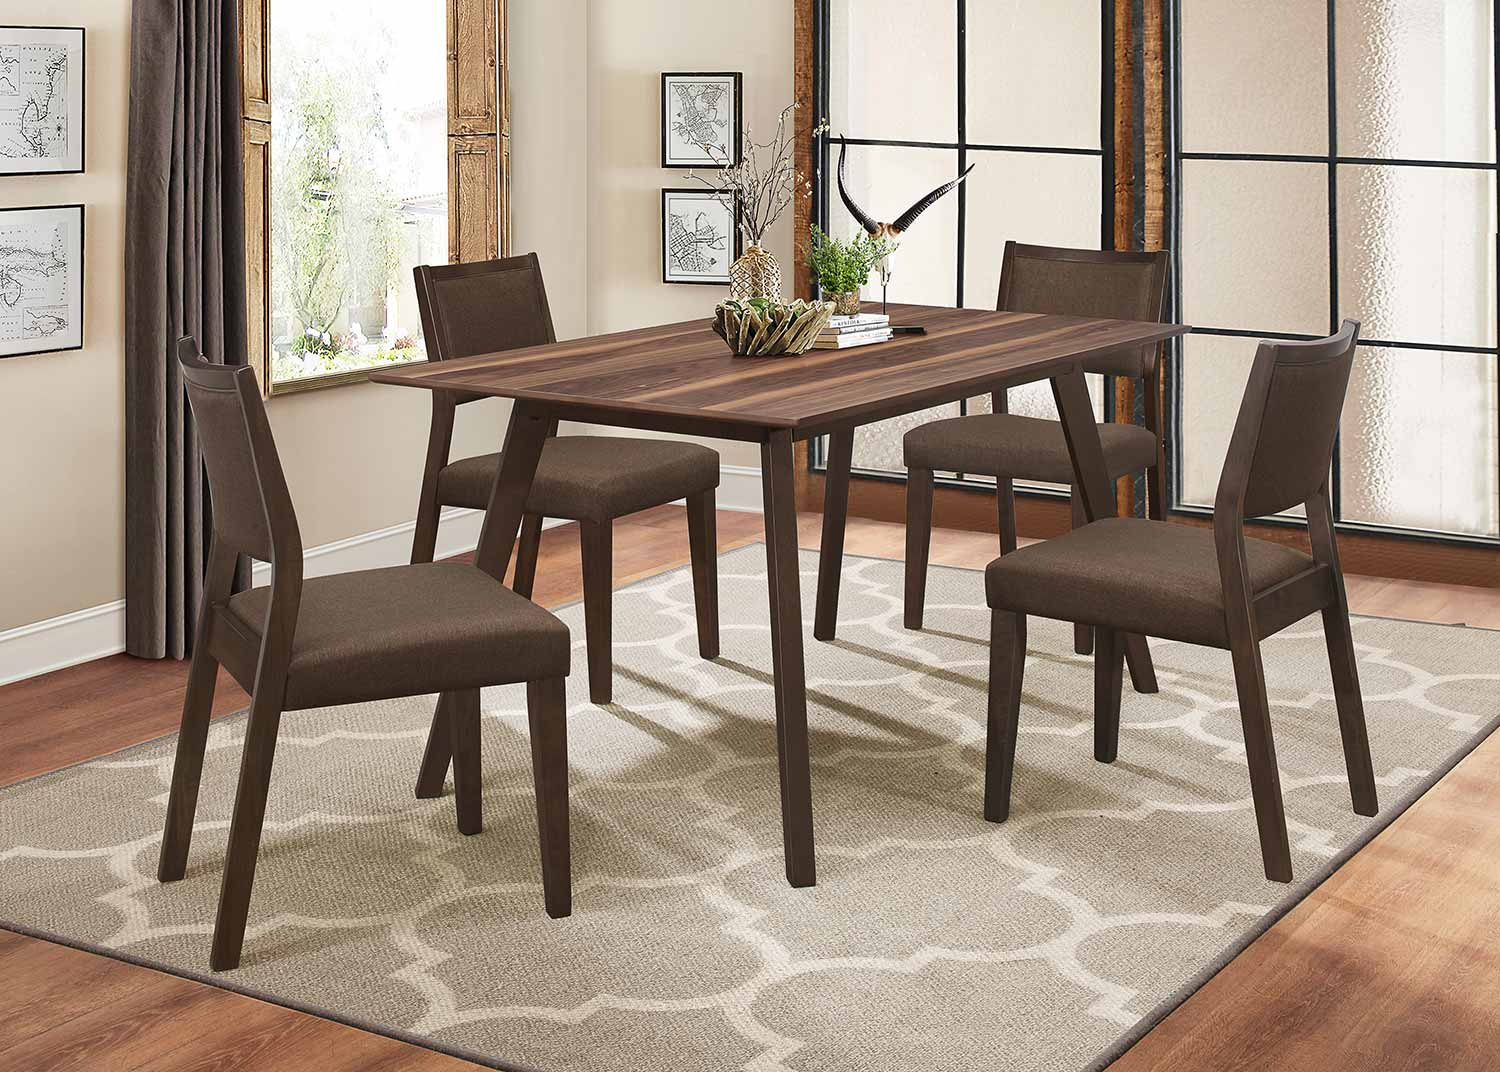 Homelegance Steer Dining Set - Walnut 2-Tone